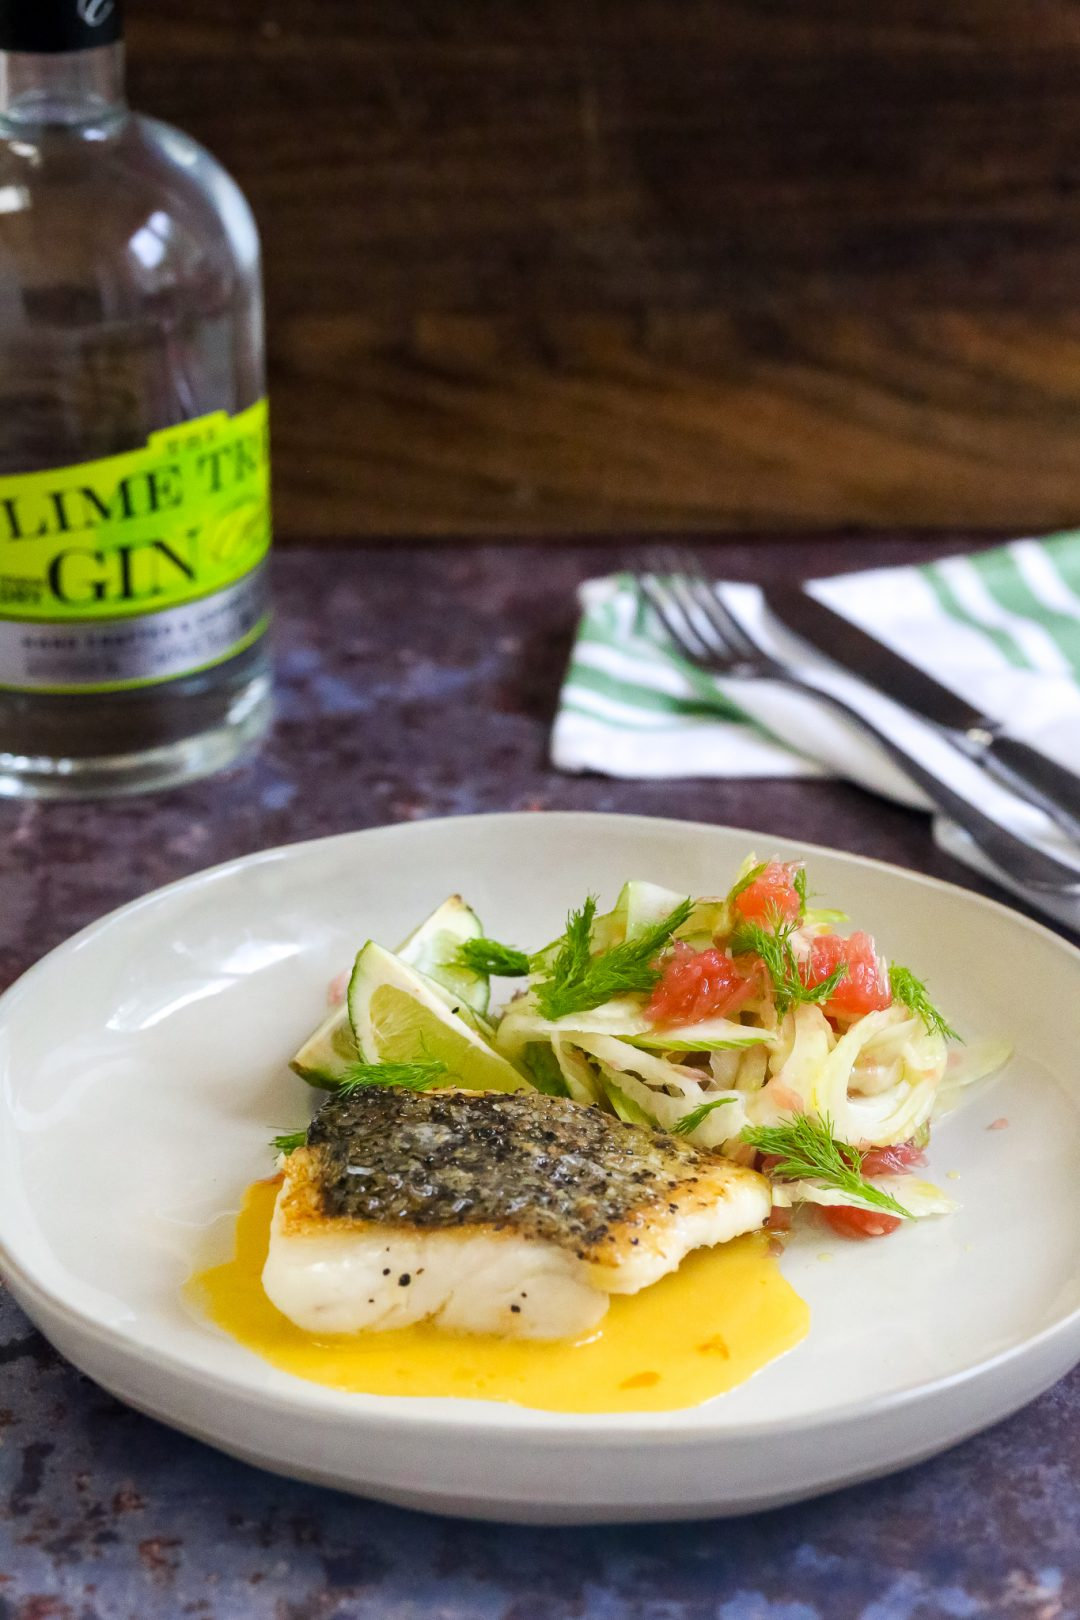 Fillet of hake with lemon gin hollandaise and a fennel and grapefruit salad